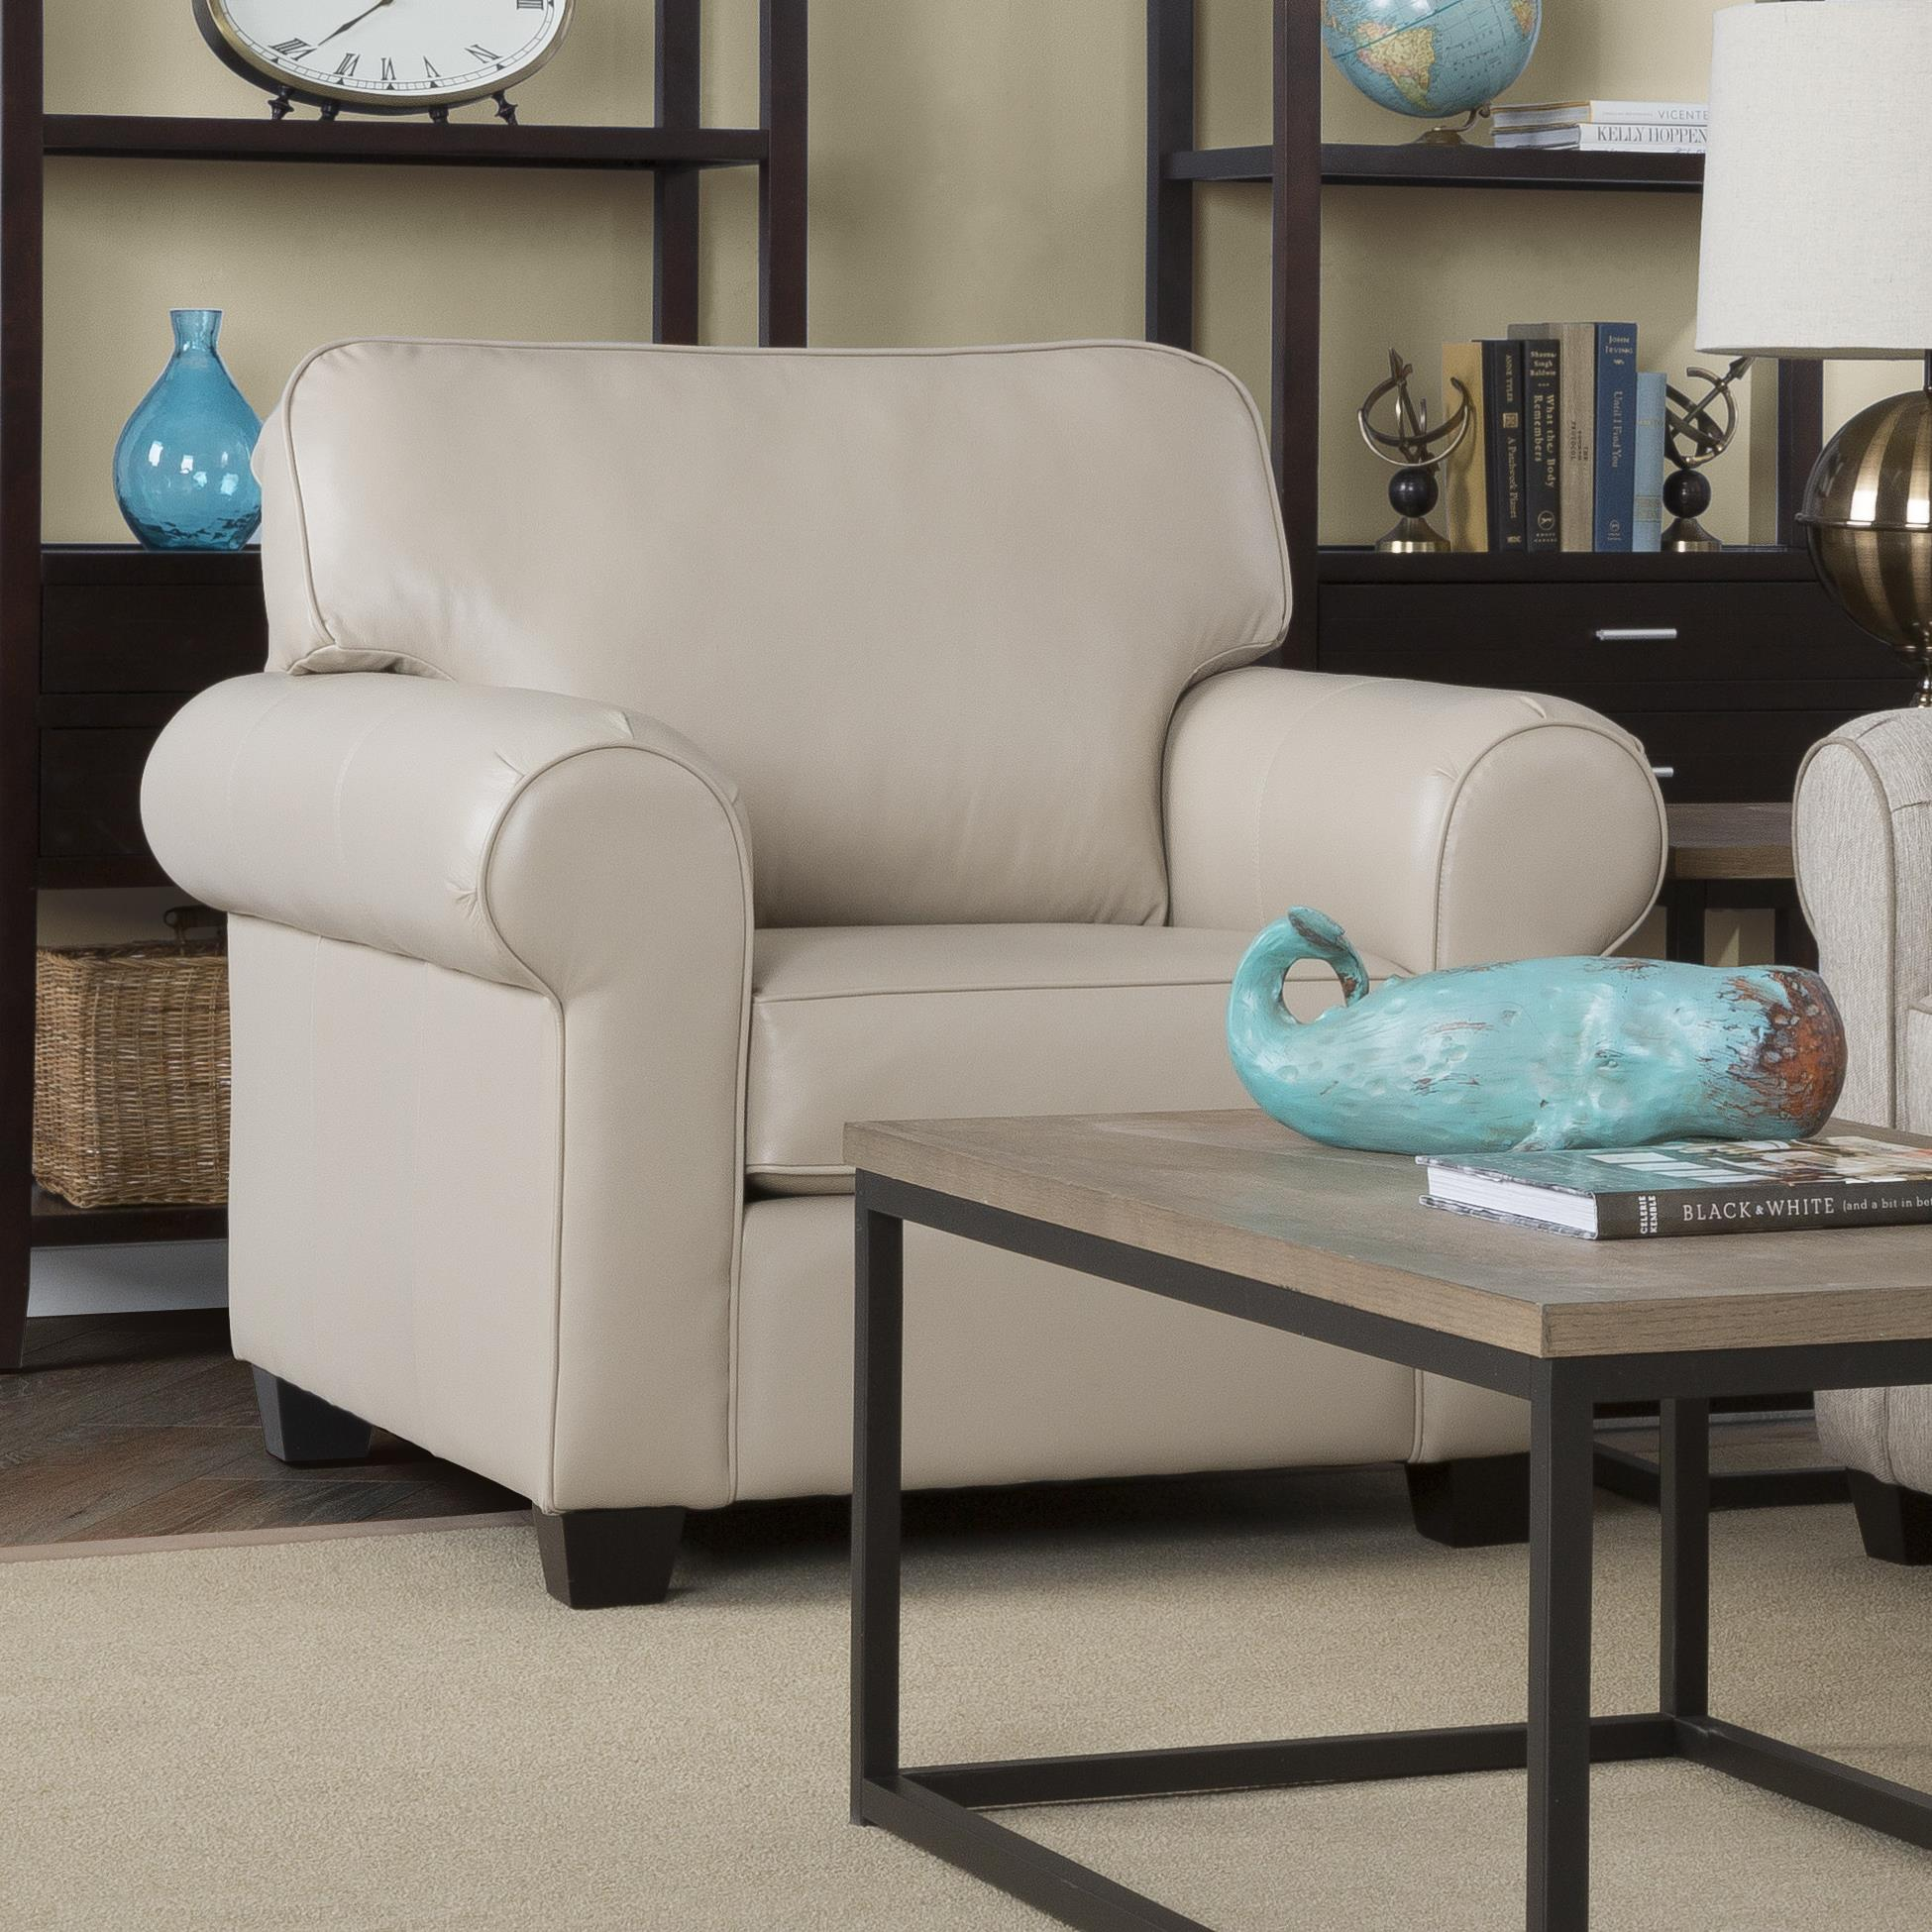 3179 Chair by Decor-Rest at Stoney Creek Furniture